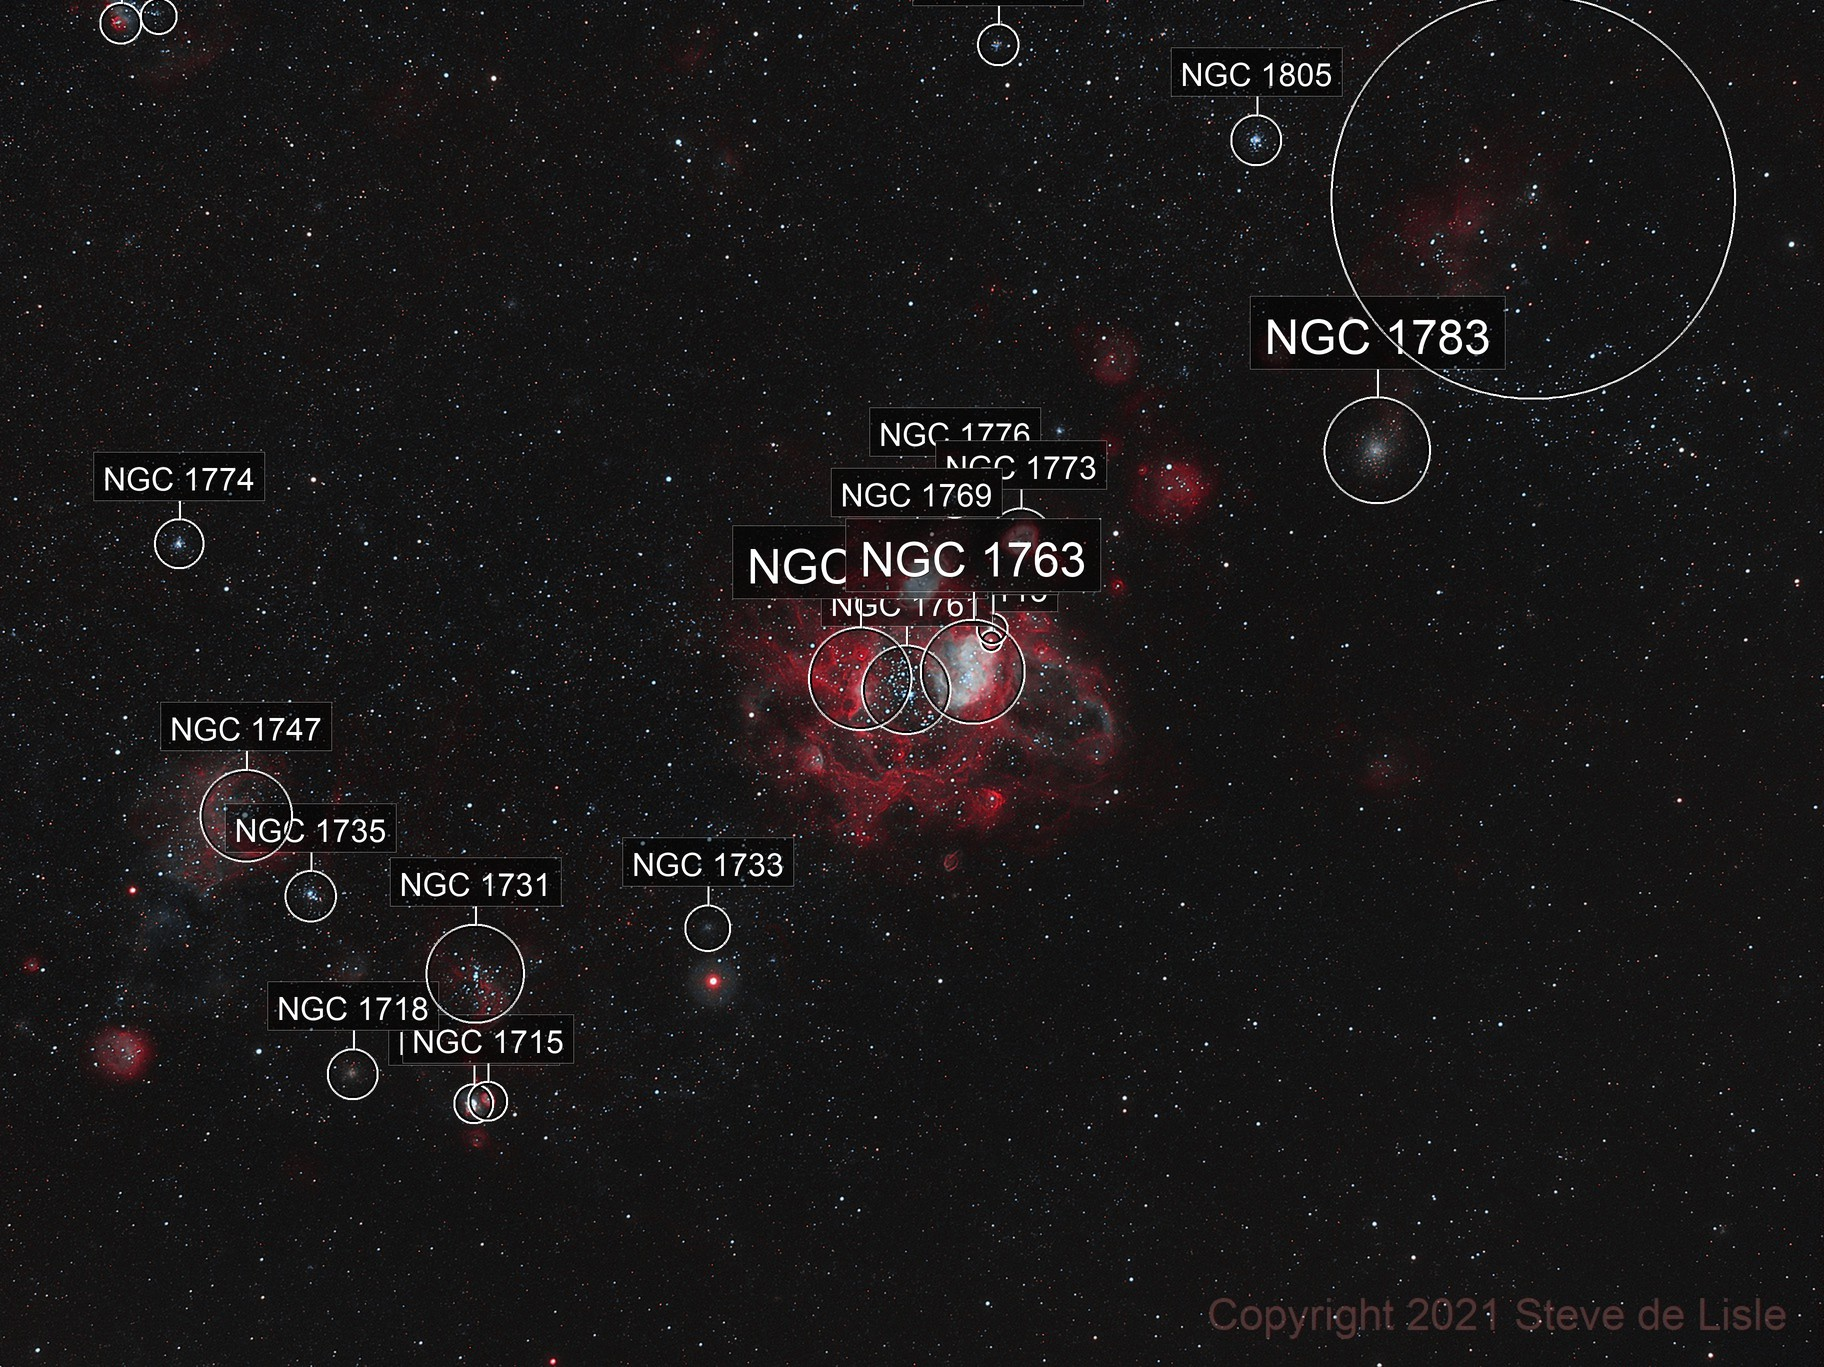 NGC1760 and NGC1761 in the LMC